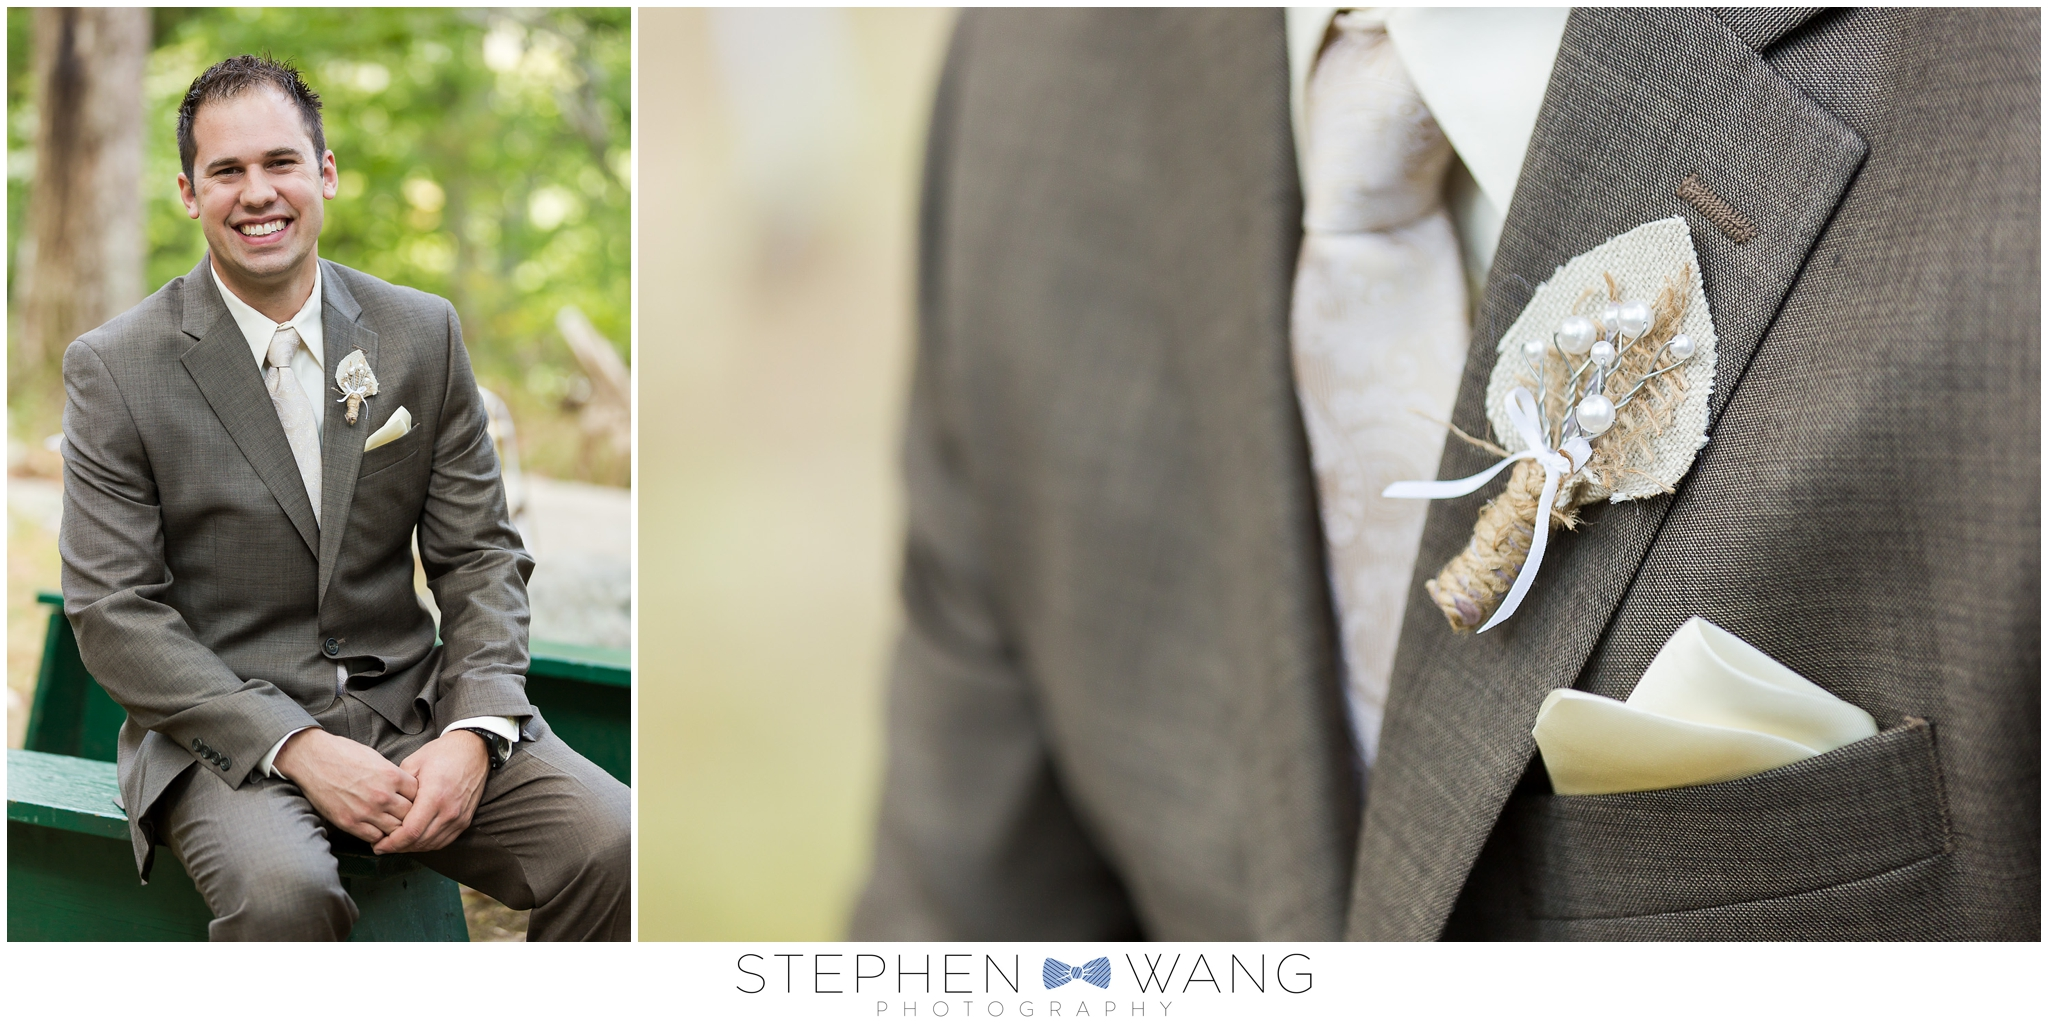 Deer lake camp forest wedding stephen wang photography connecticut outdoors woods wedding nature summer_0005.jpg